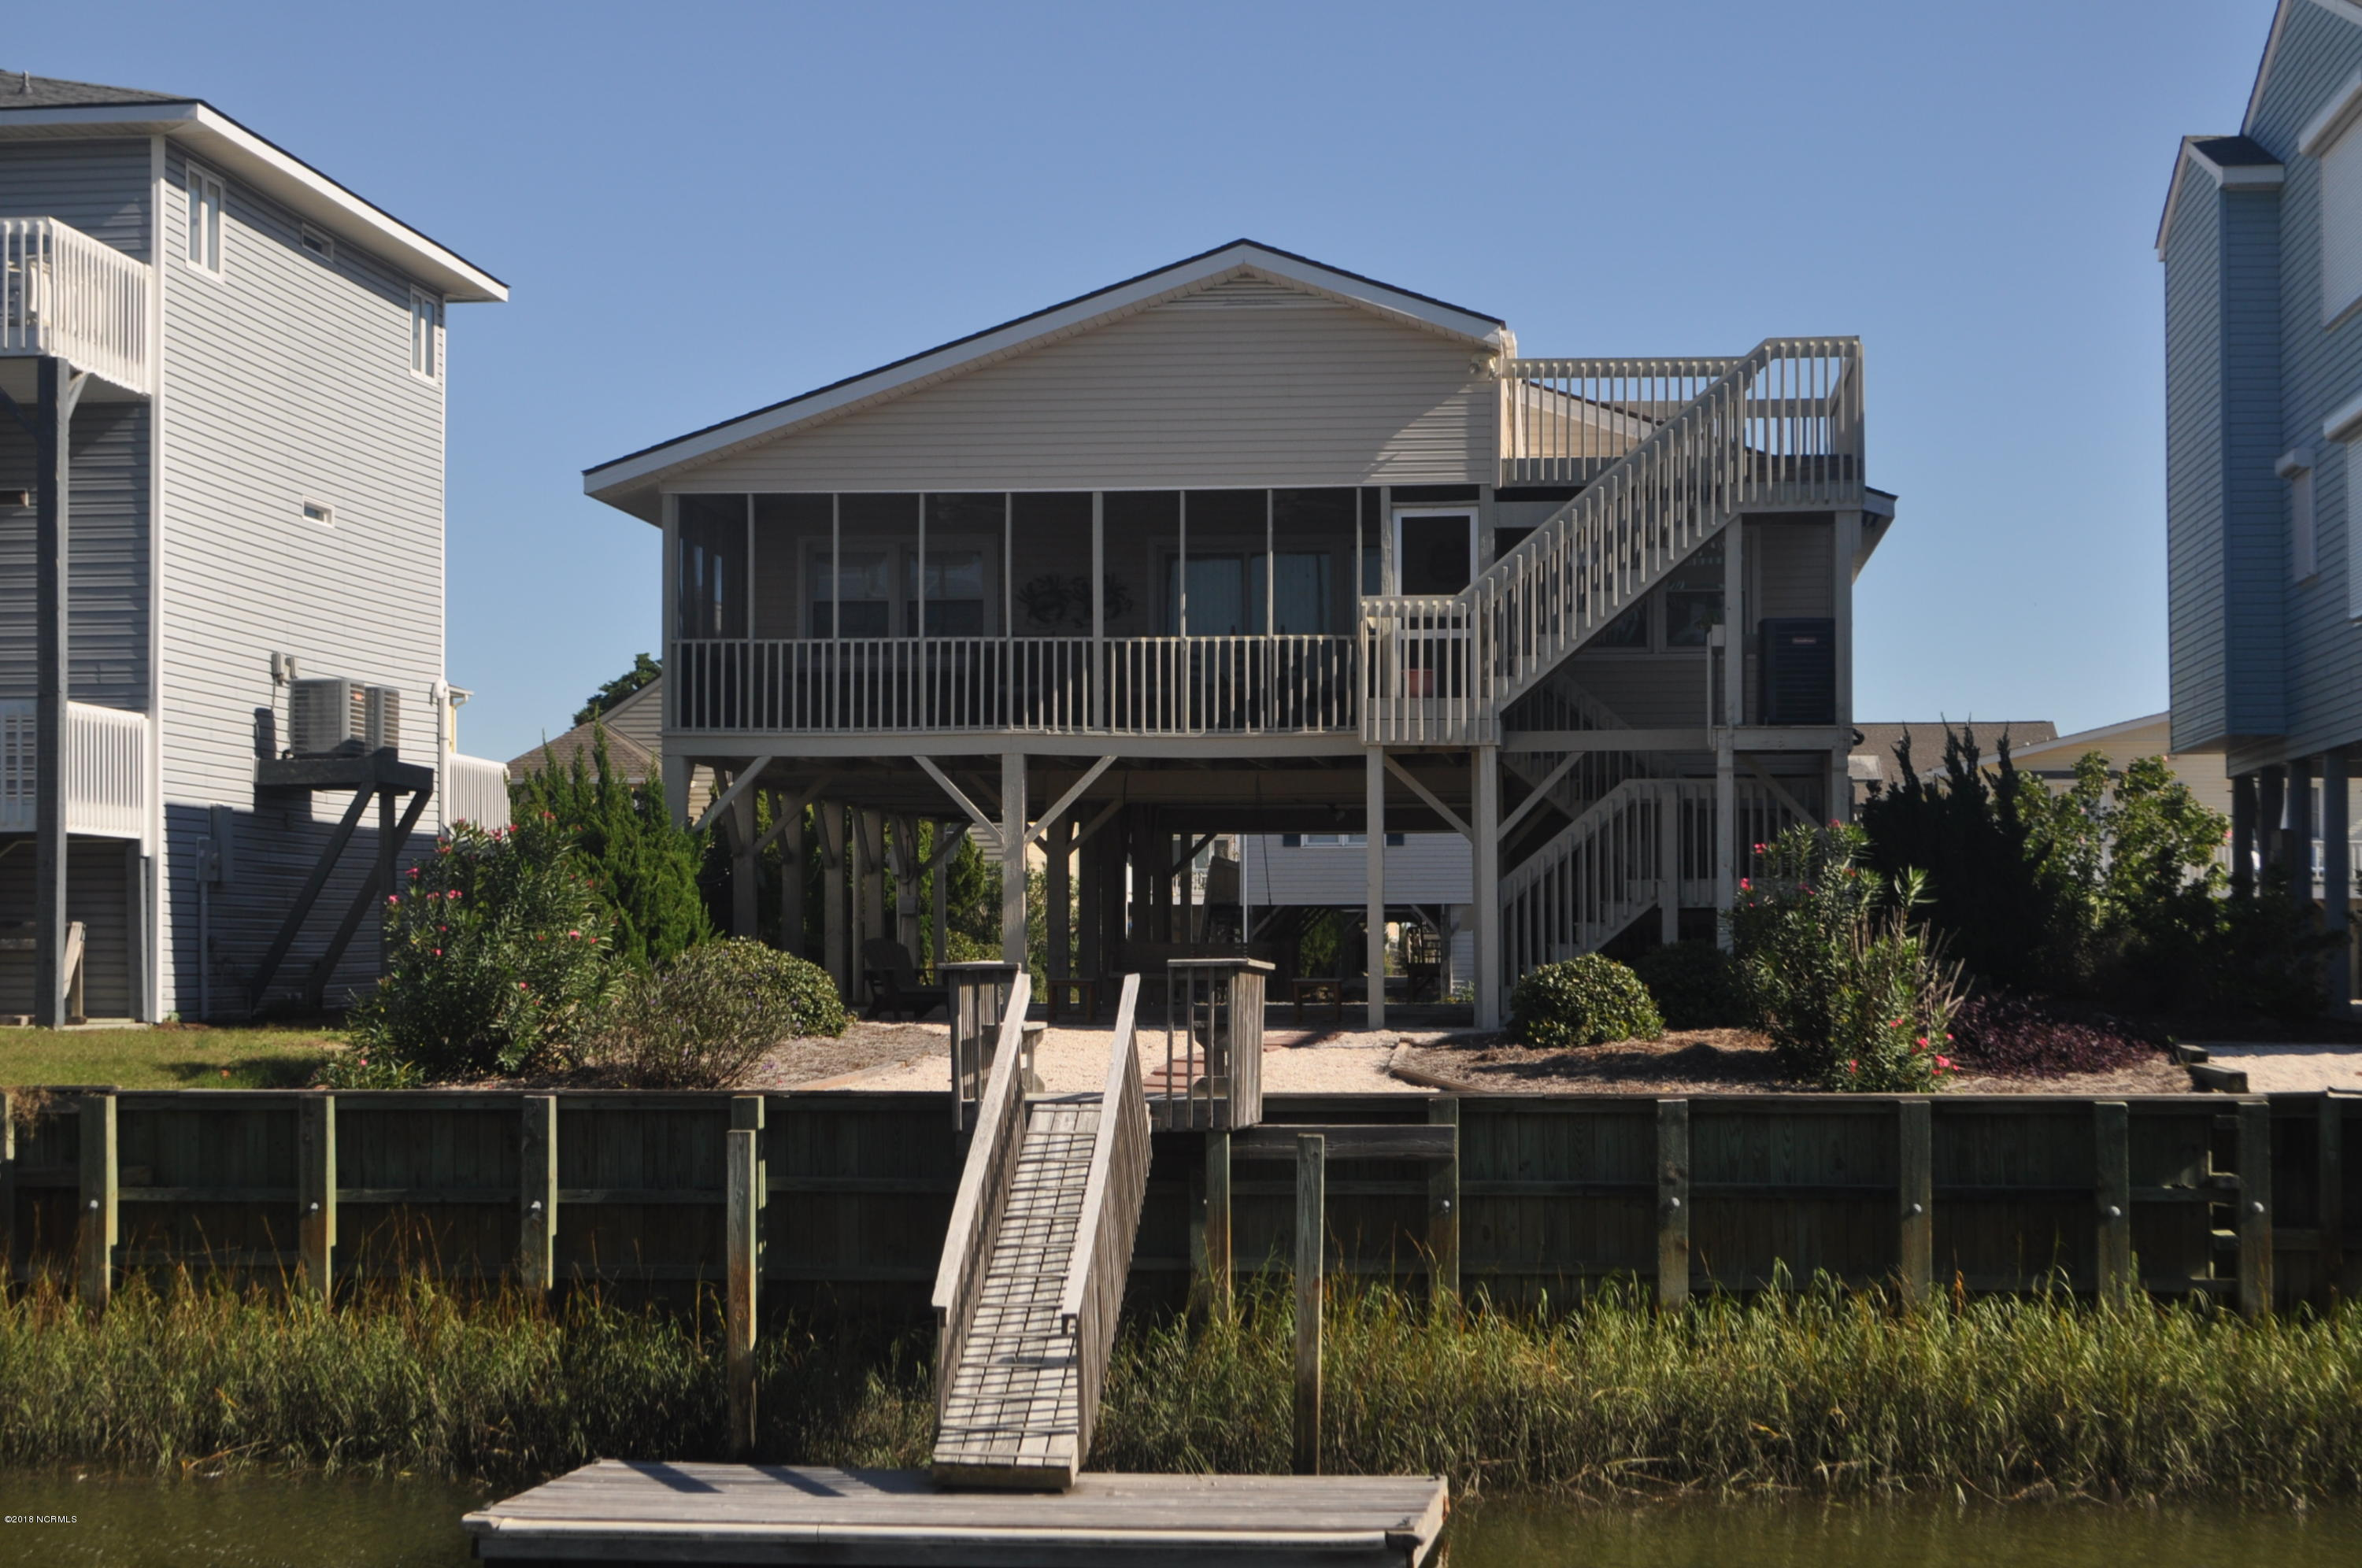 426 Sailfish Street Sunset Beach, NC 28468